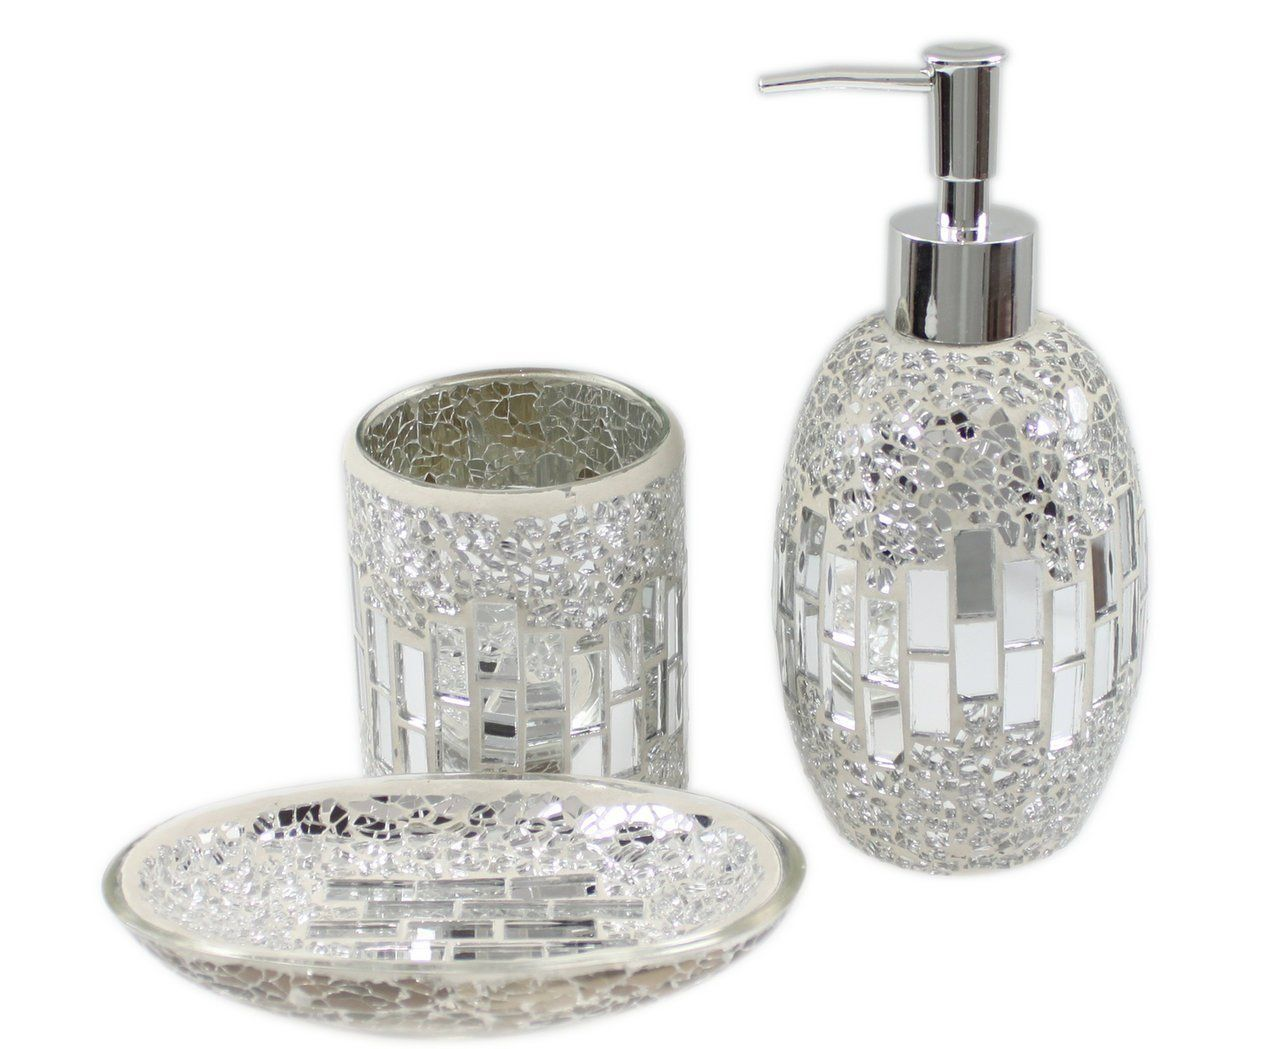 Bathroom fittings set - 3 Piece Modern Silver Chrome Sparkle Mosaic Glass Tile Bathroom Accessory Set Amazonco